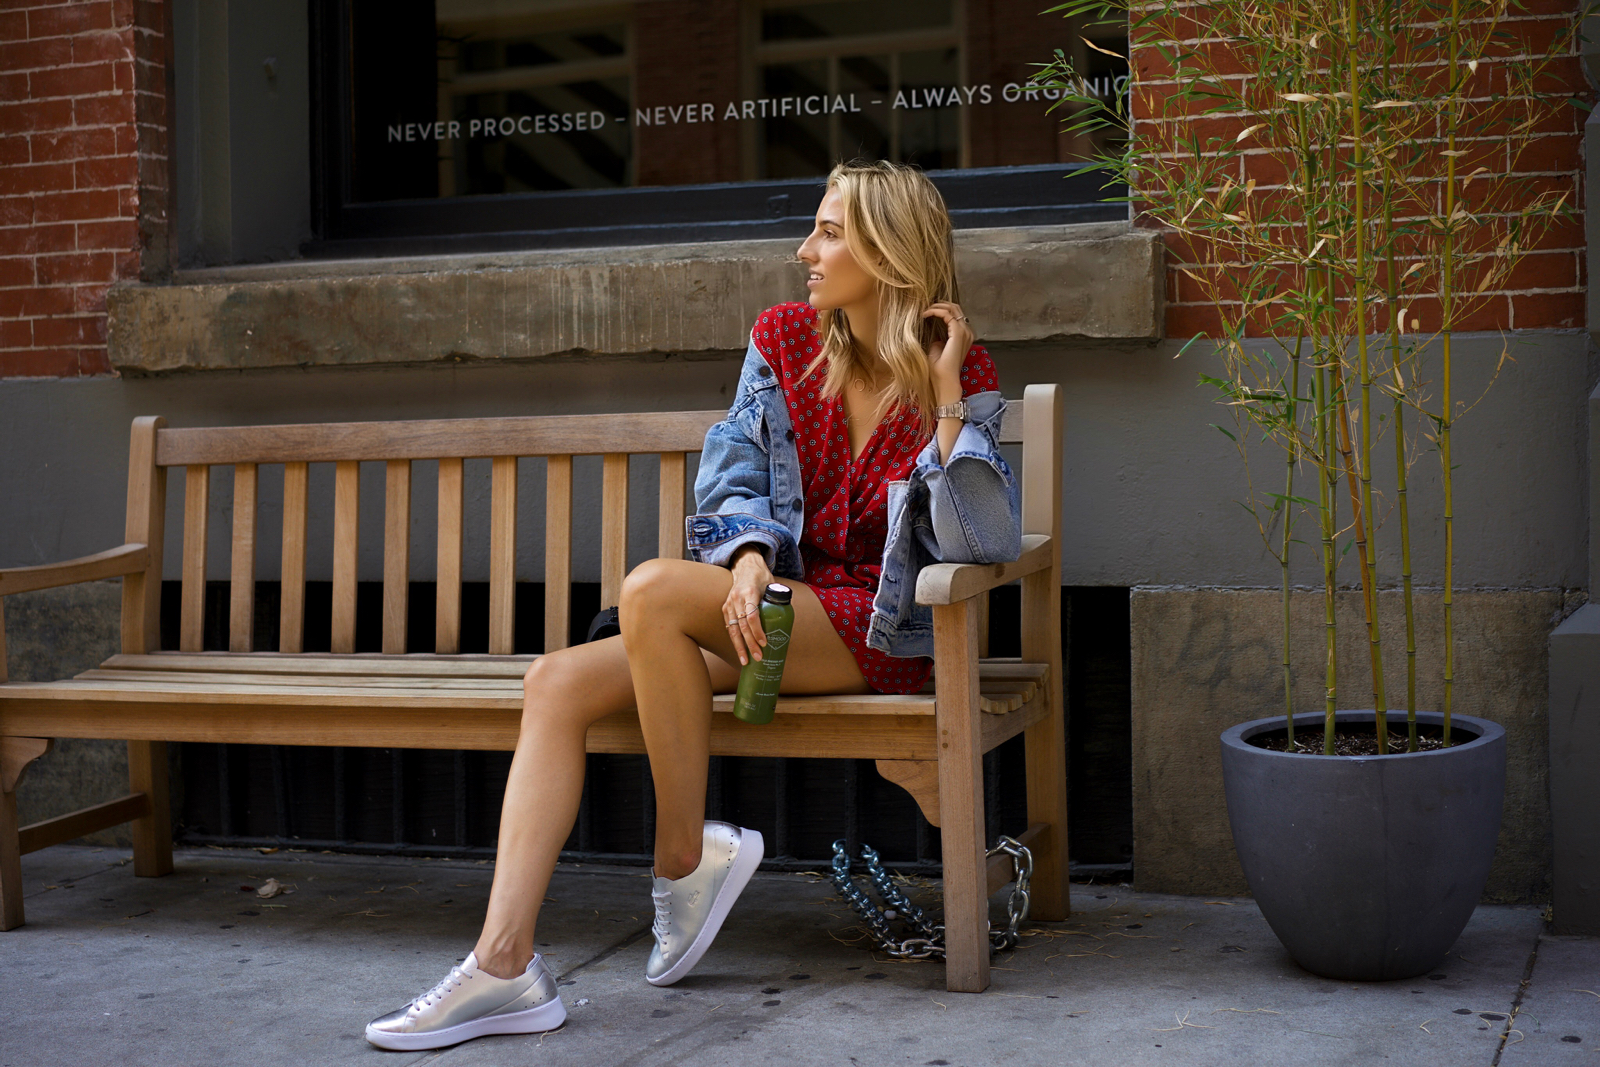 Lacoste sneakers, SoHo NYC, Red Romper, Vintage Denim Jacket, Round Sunglasses, Green juice